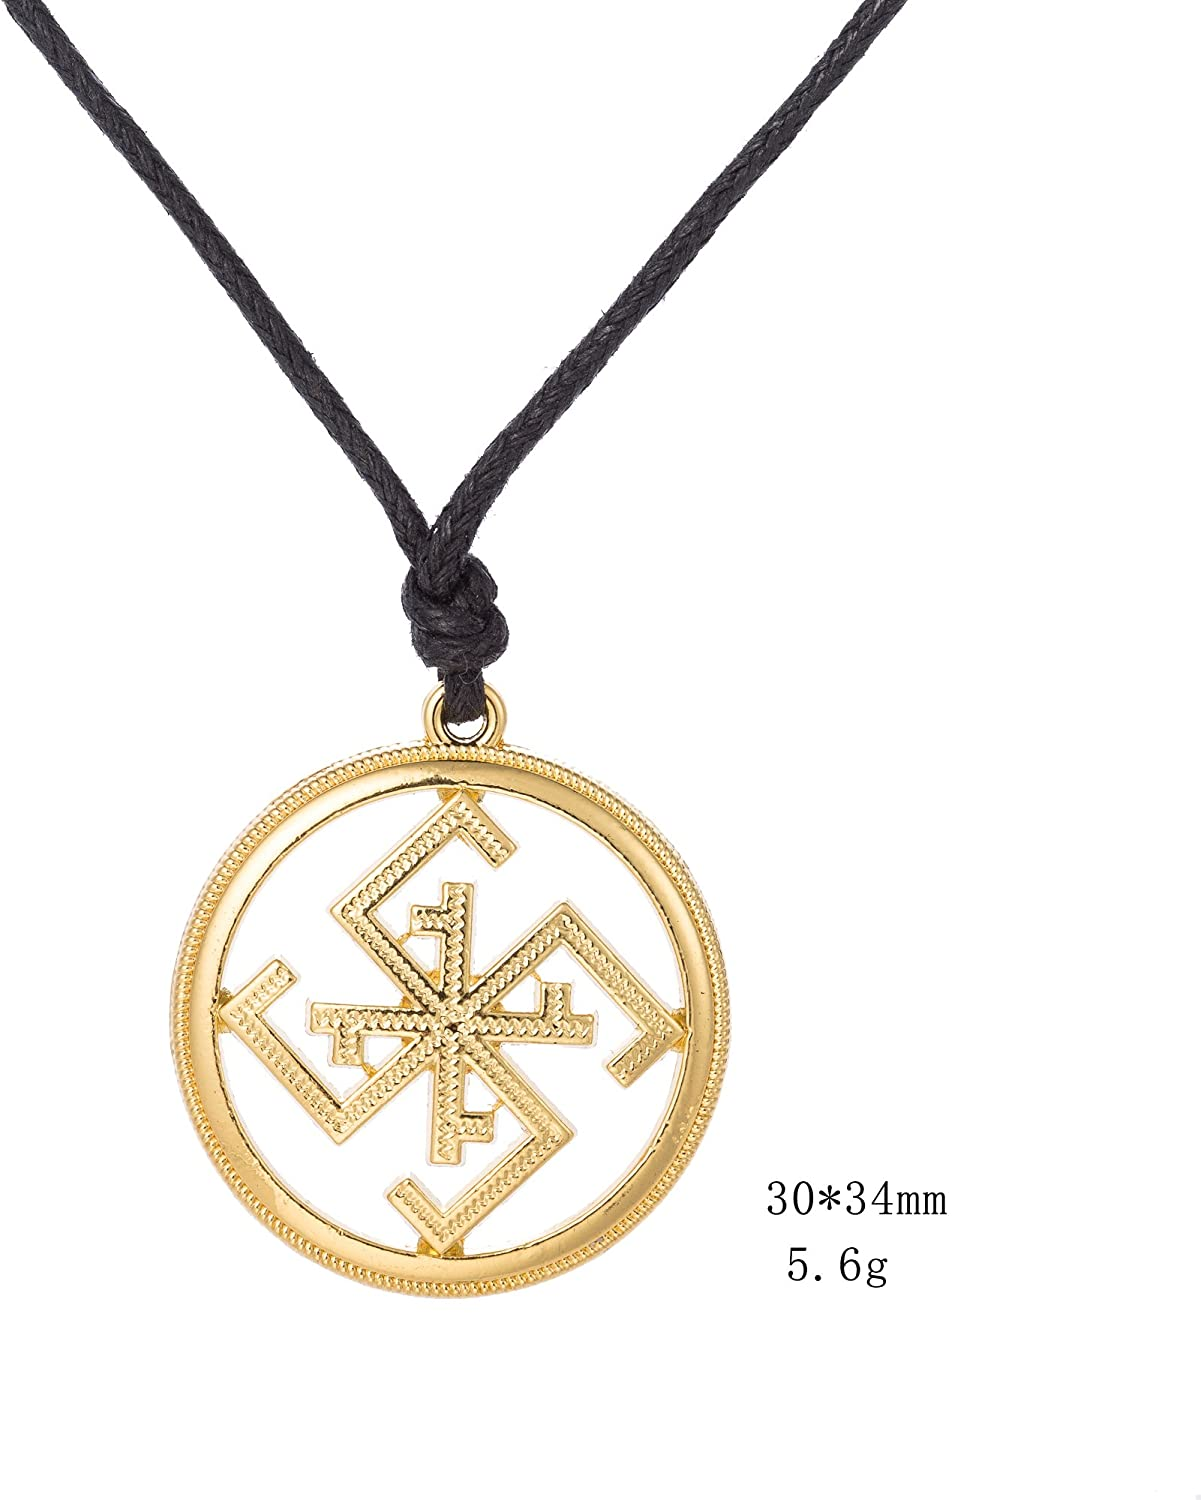 fishhook Religious Norse Viking Amulet Pattern Lucky Meaning Cross Pendant Necklace